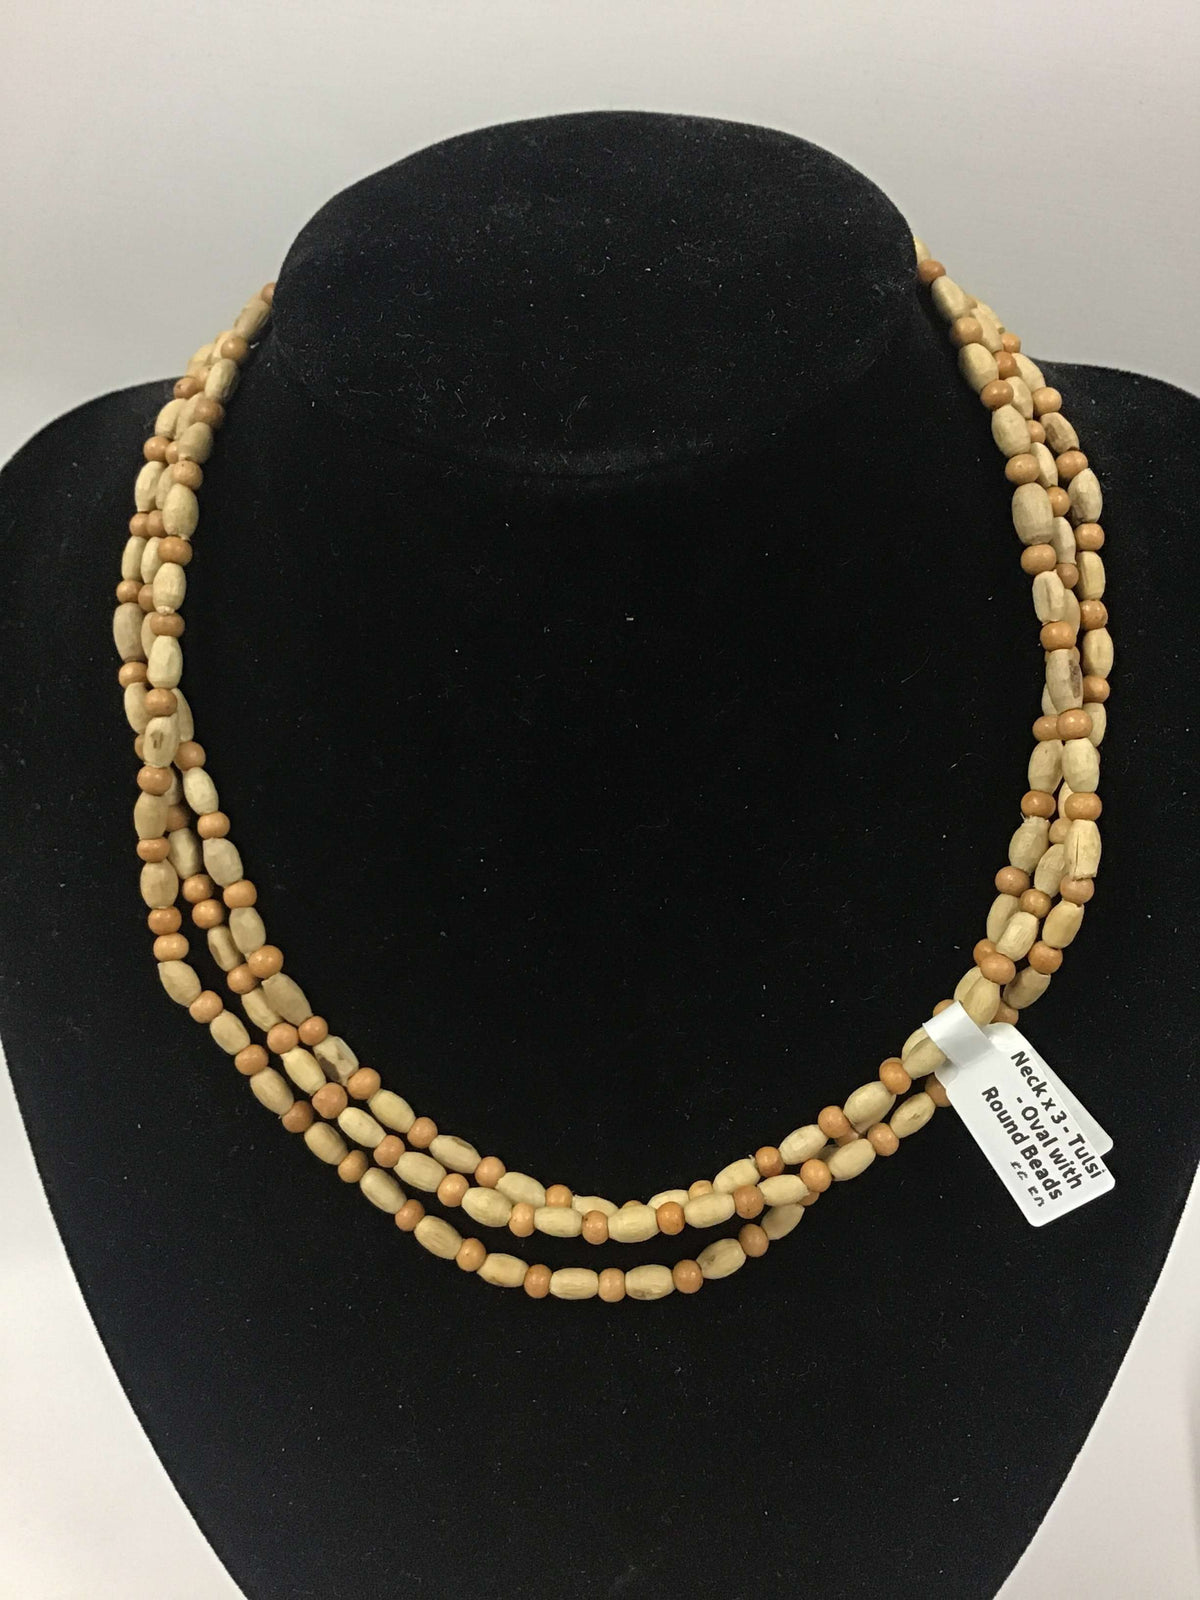 Neck x 3 - Tulsi - Oval with Round Beads